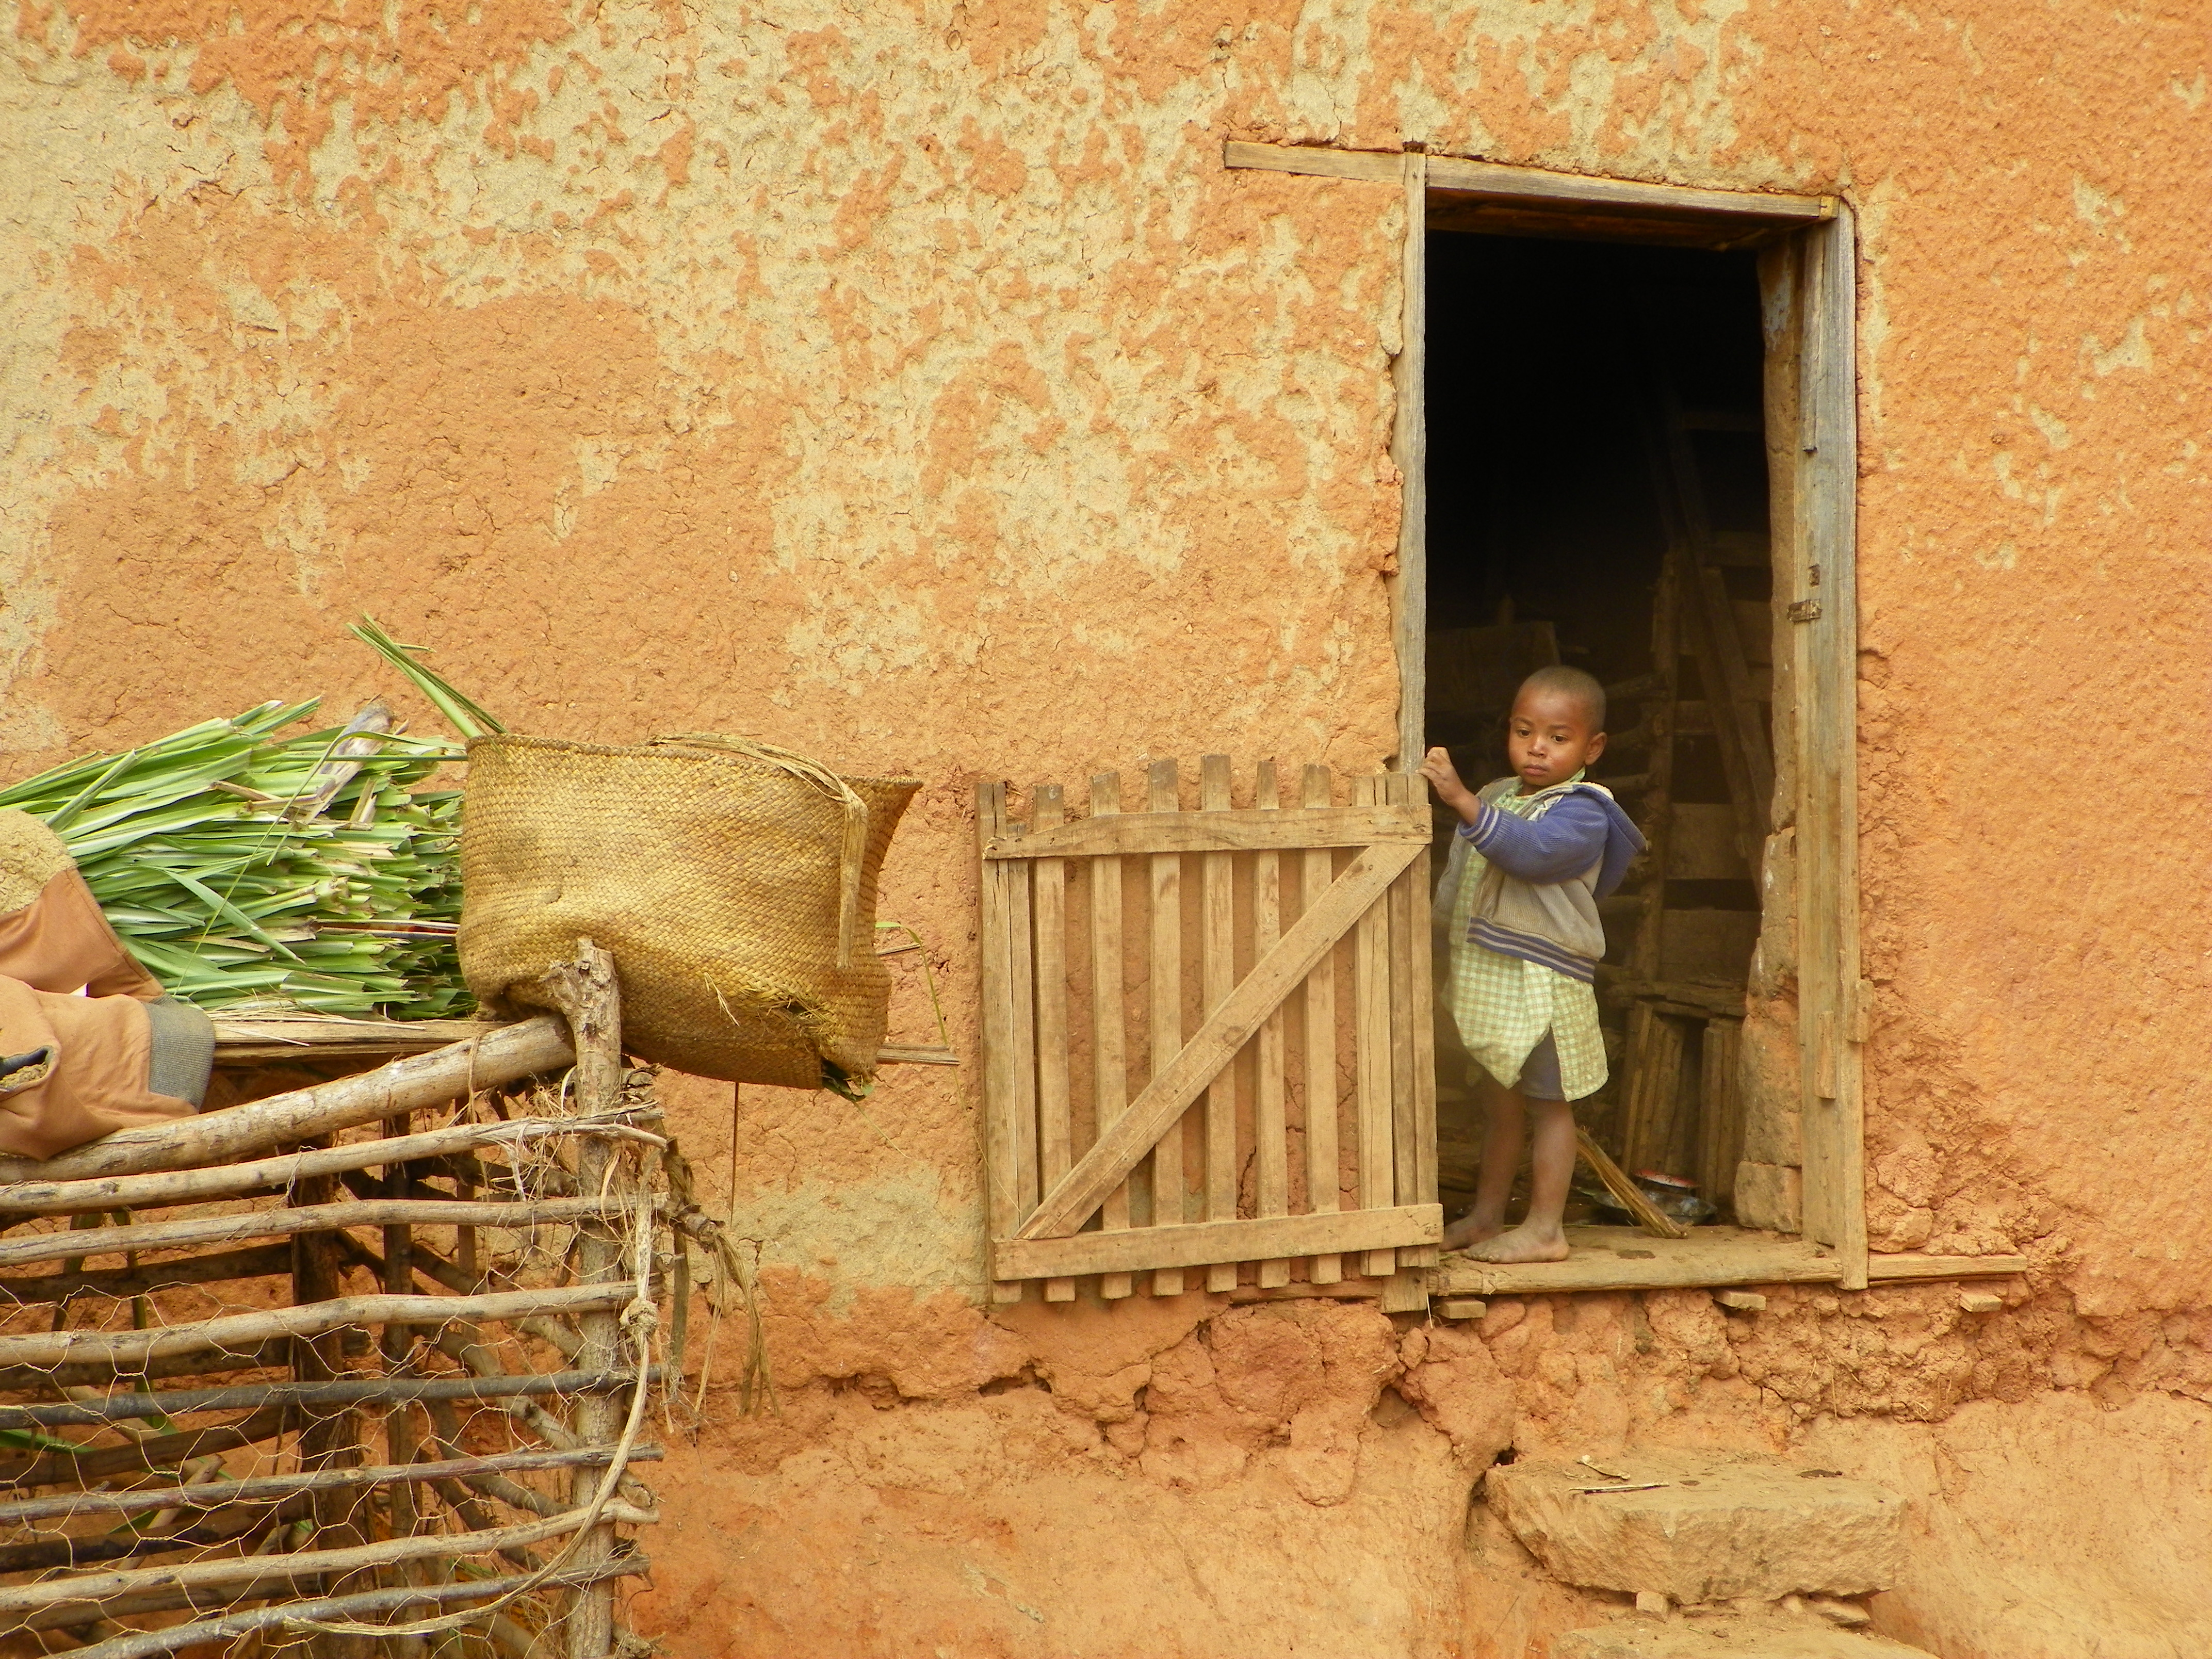 a small child looks out a doorway of an old building